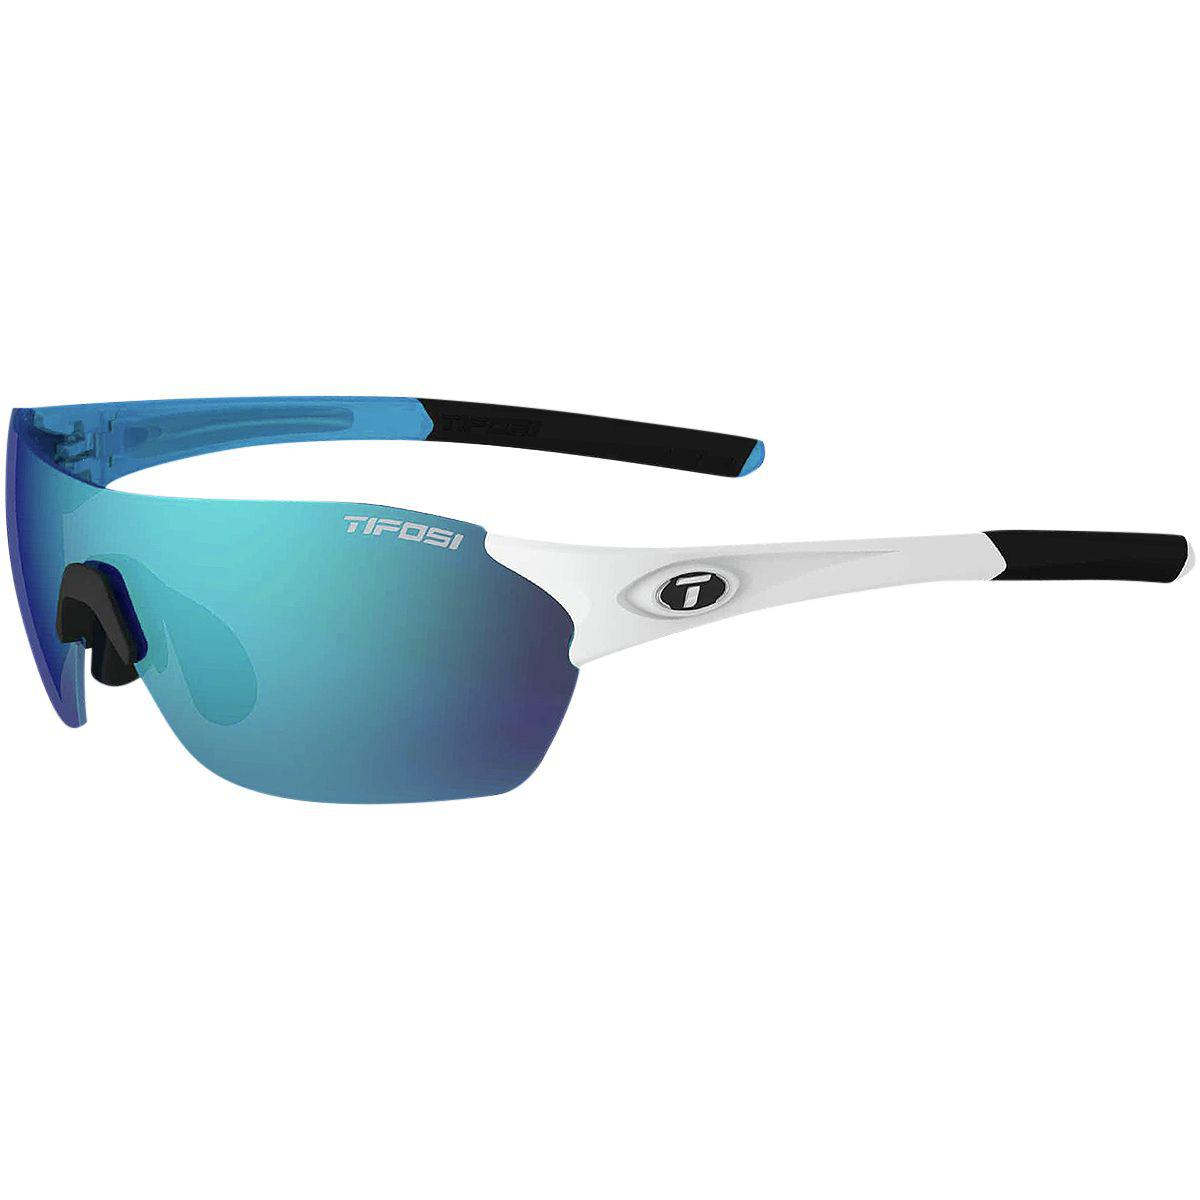 0d1c7e3910 Lyst - Tifosi Optics Brixen Sunglasses in Blue for Men